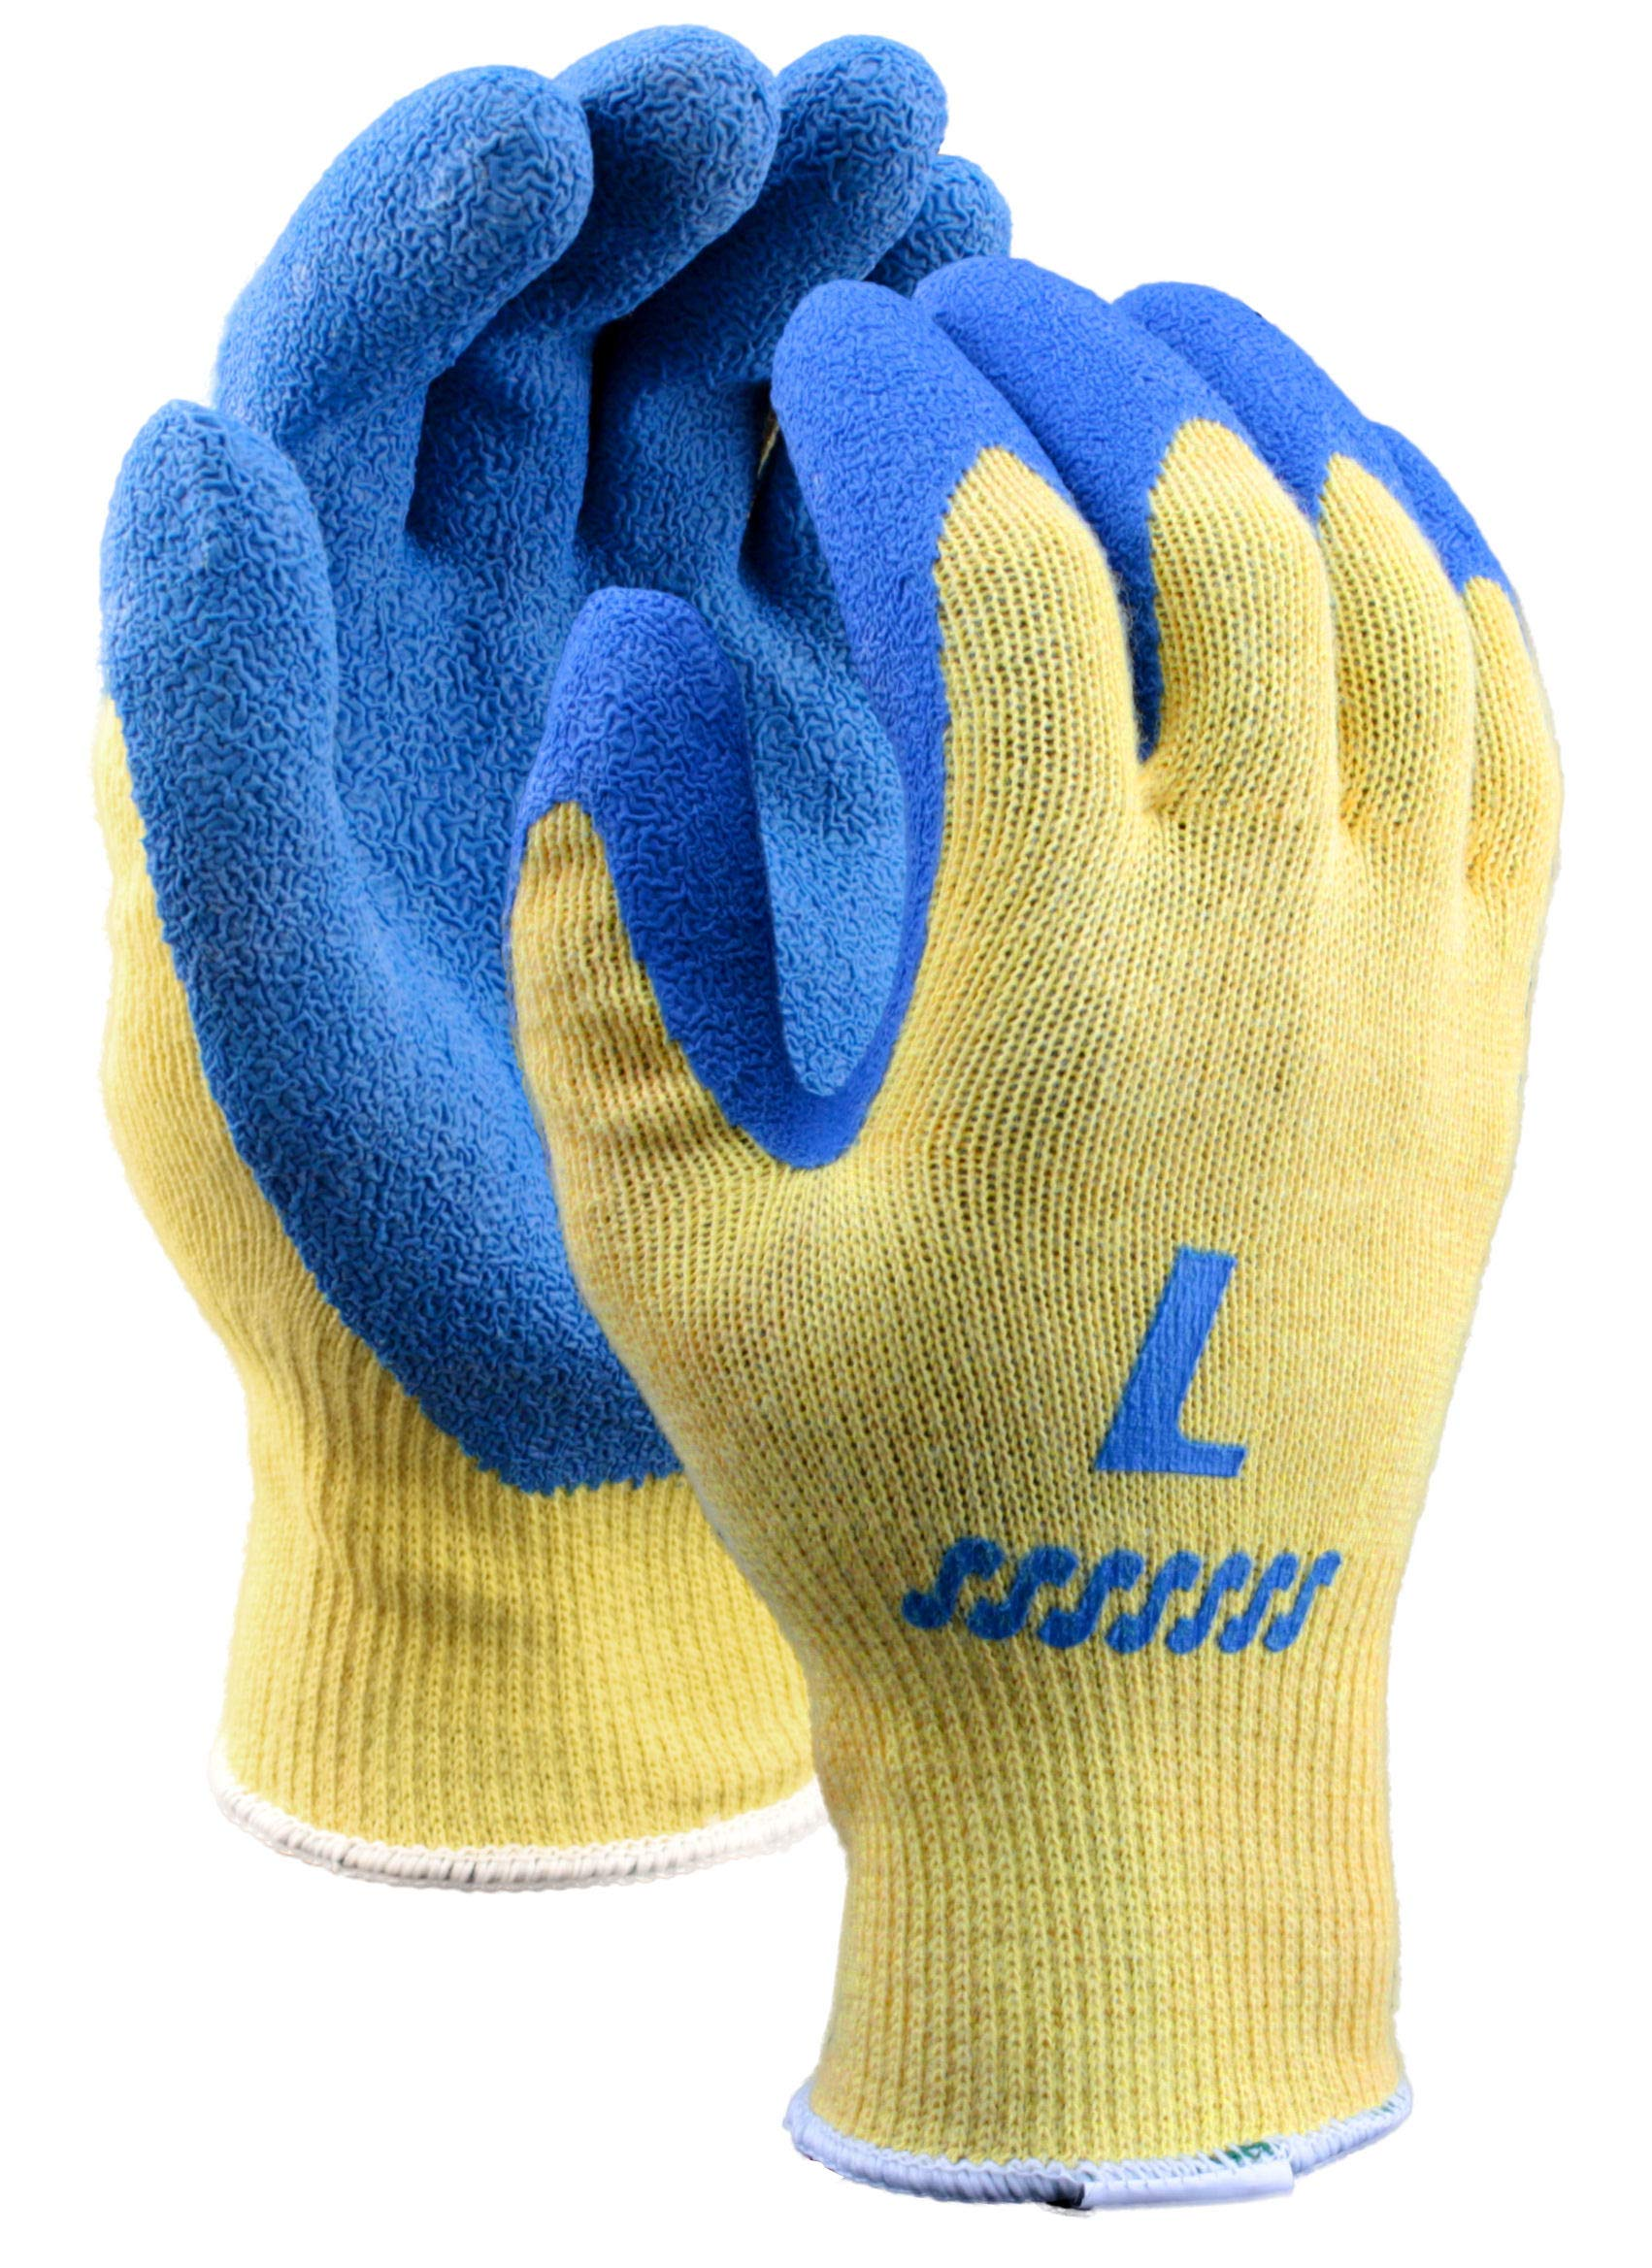 Stauffer Kevlar Glove with Blue Crinkle Rubber Coating, Cut Level A2, Large, (Pack of 12) by Stauffer Glove & Safety (Image #1)